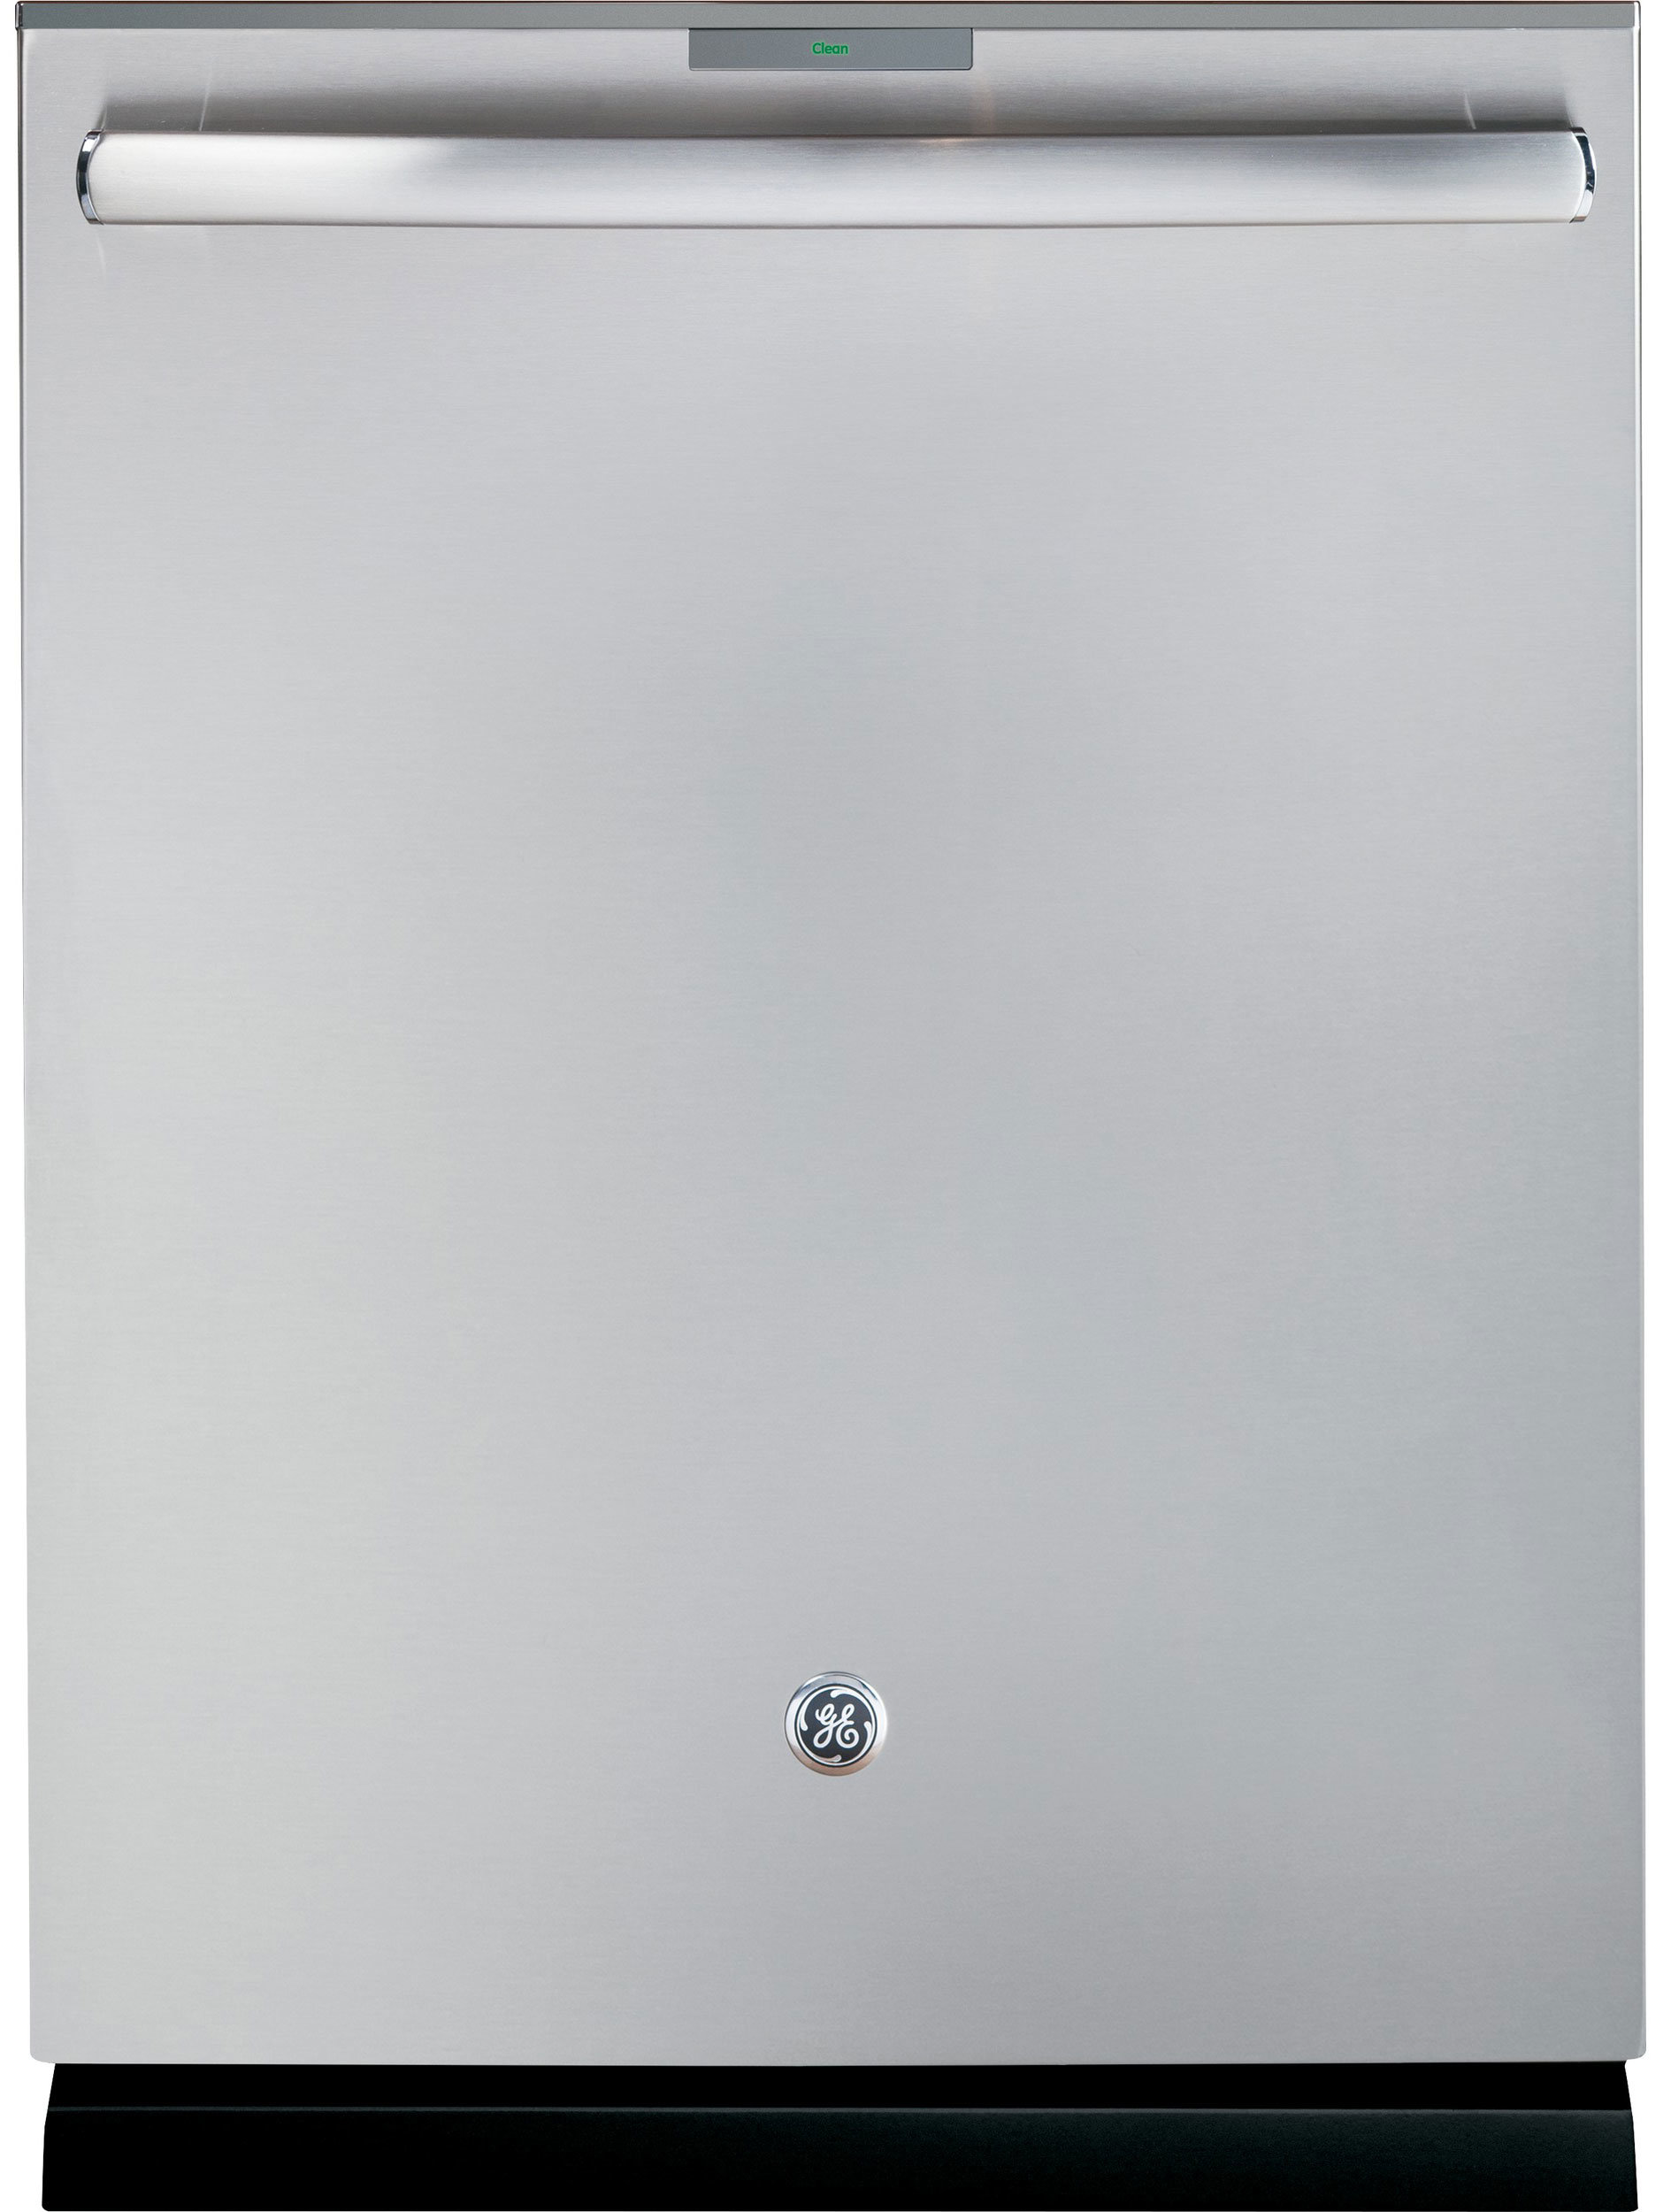 Ge Profile Performance Ge Profile Pdt846ssjss Pdt846smjes Series Dishwasher Review